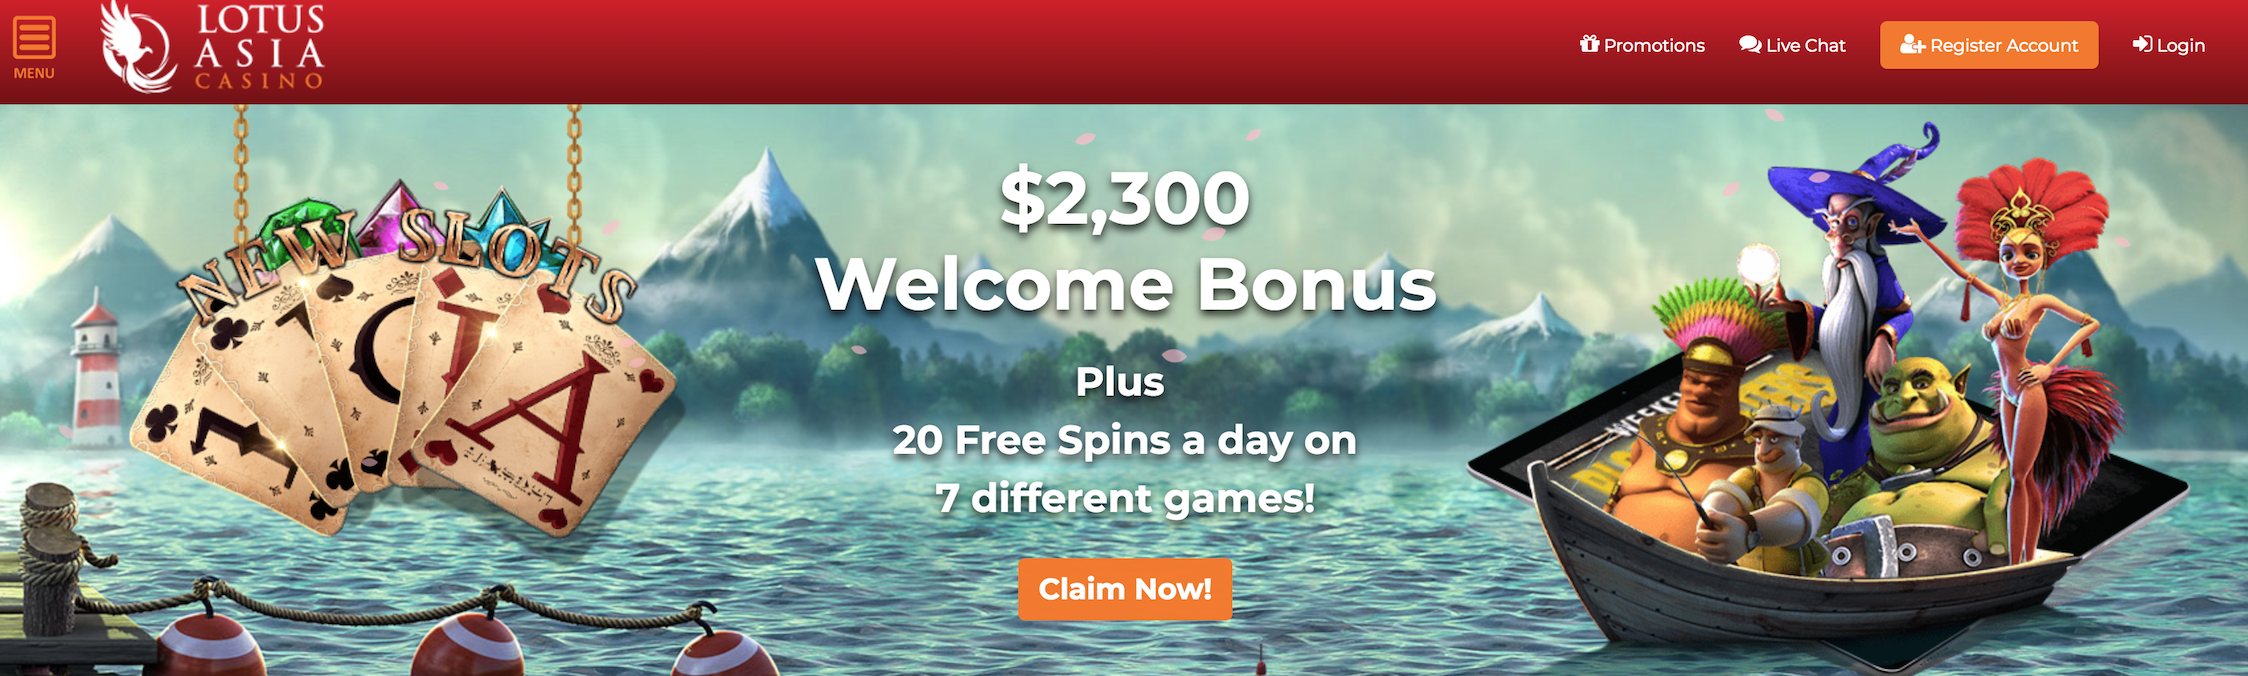 Bringing News From Lotus Asia Casino Check Out Latest Daily Bonuses Bonuskoder